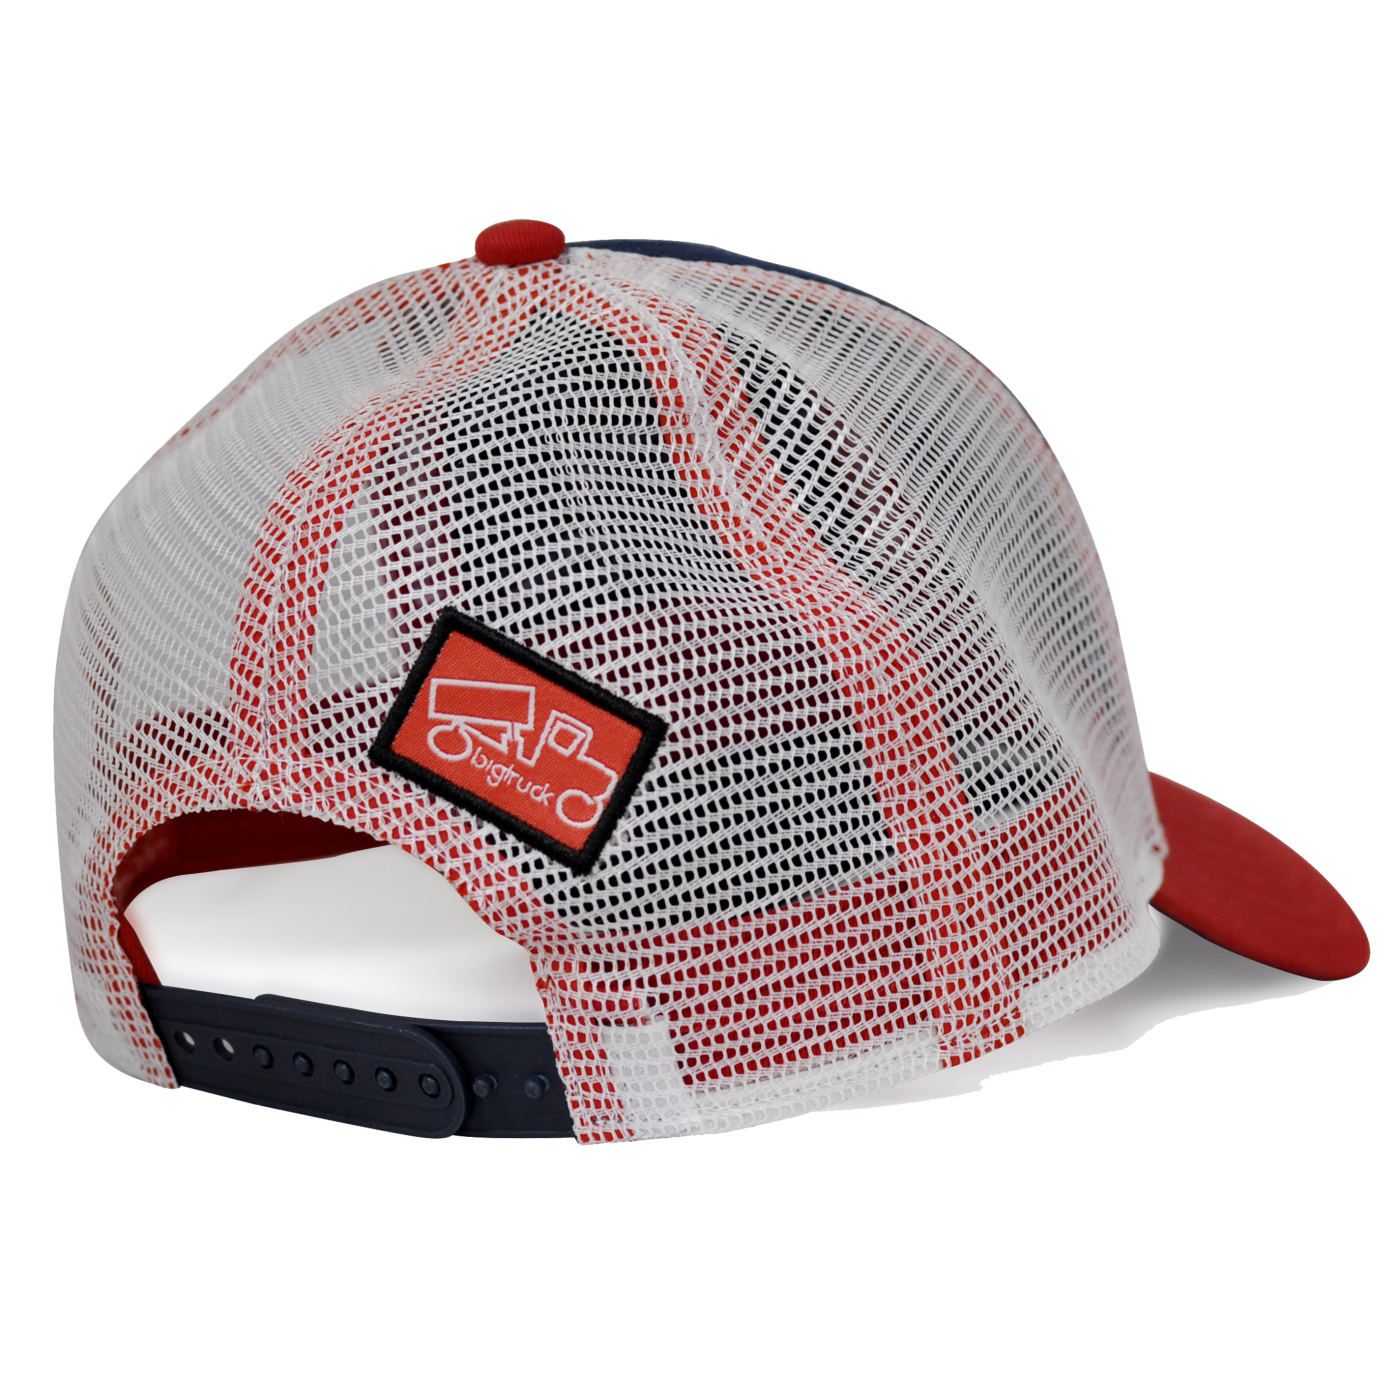 Classic Red Navy White Back1 copy